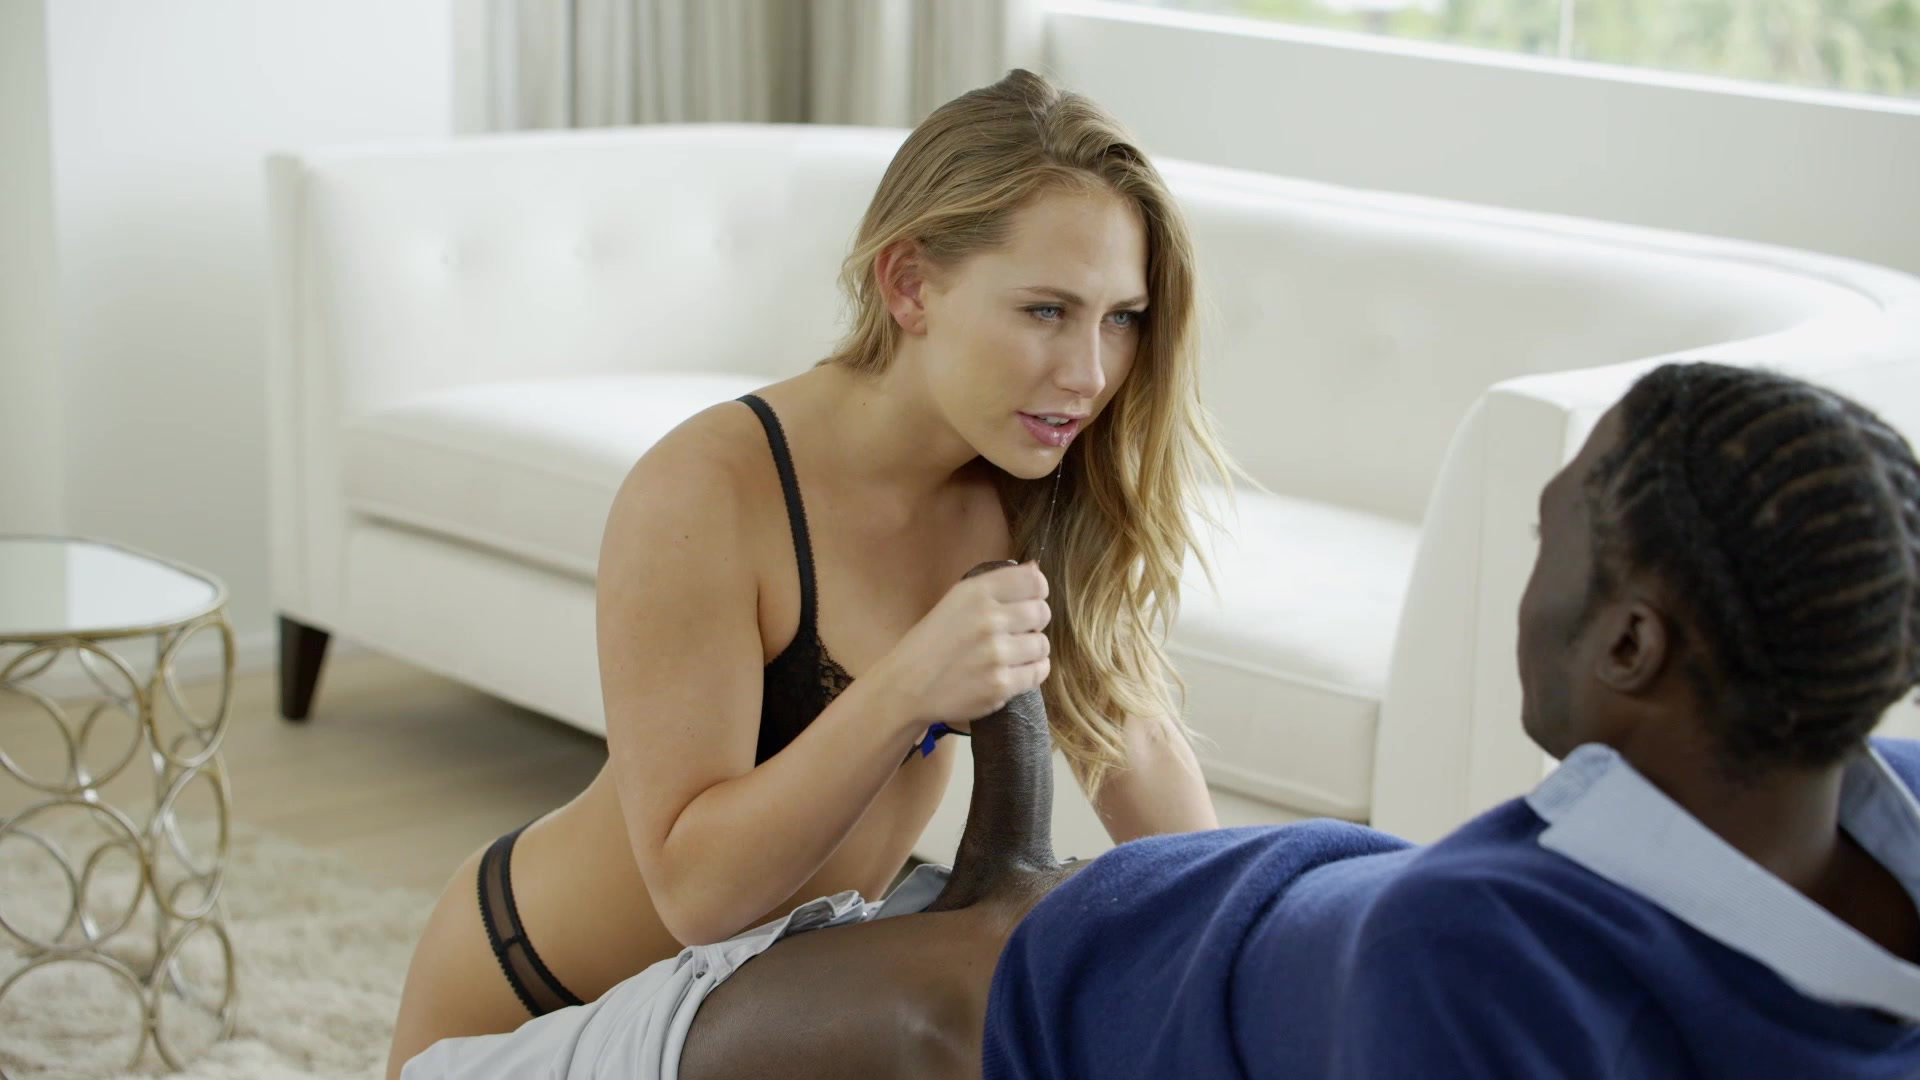 Brooke haze takes a break from hiking to suck a cock